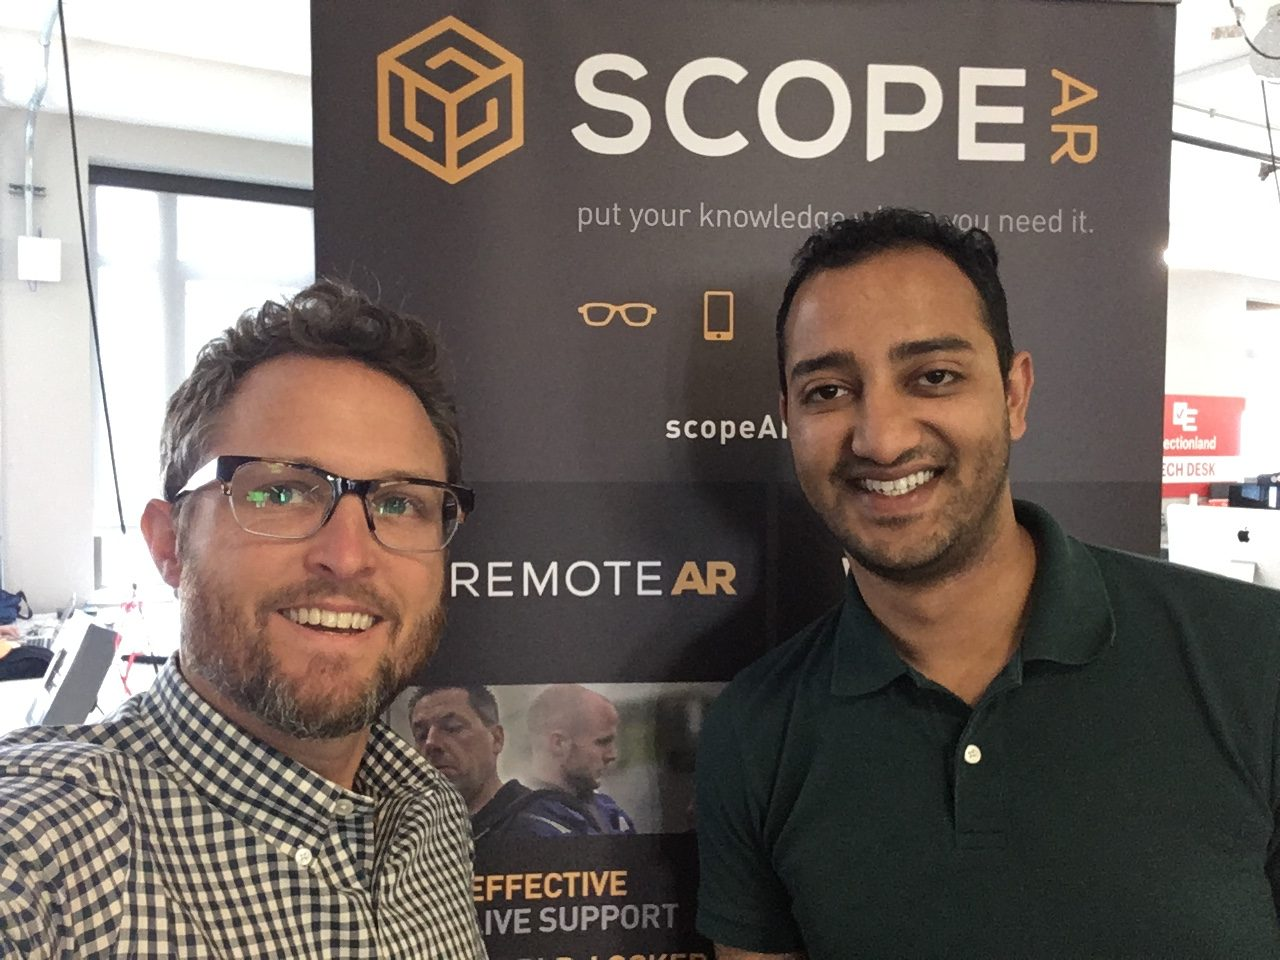 Paul demoing Scope AR's Remote AR and WorkLink products with Director of Sales & Business Development Nayan Mehta